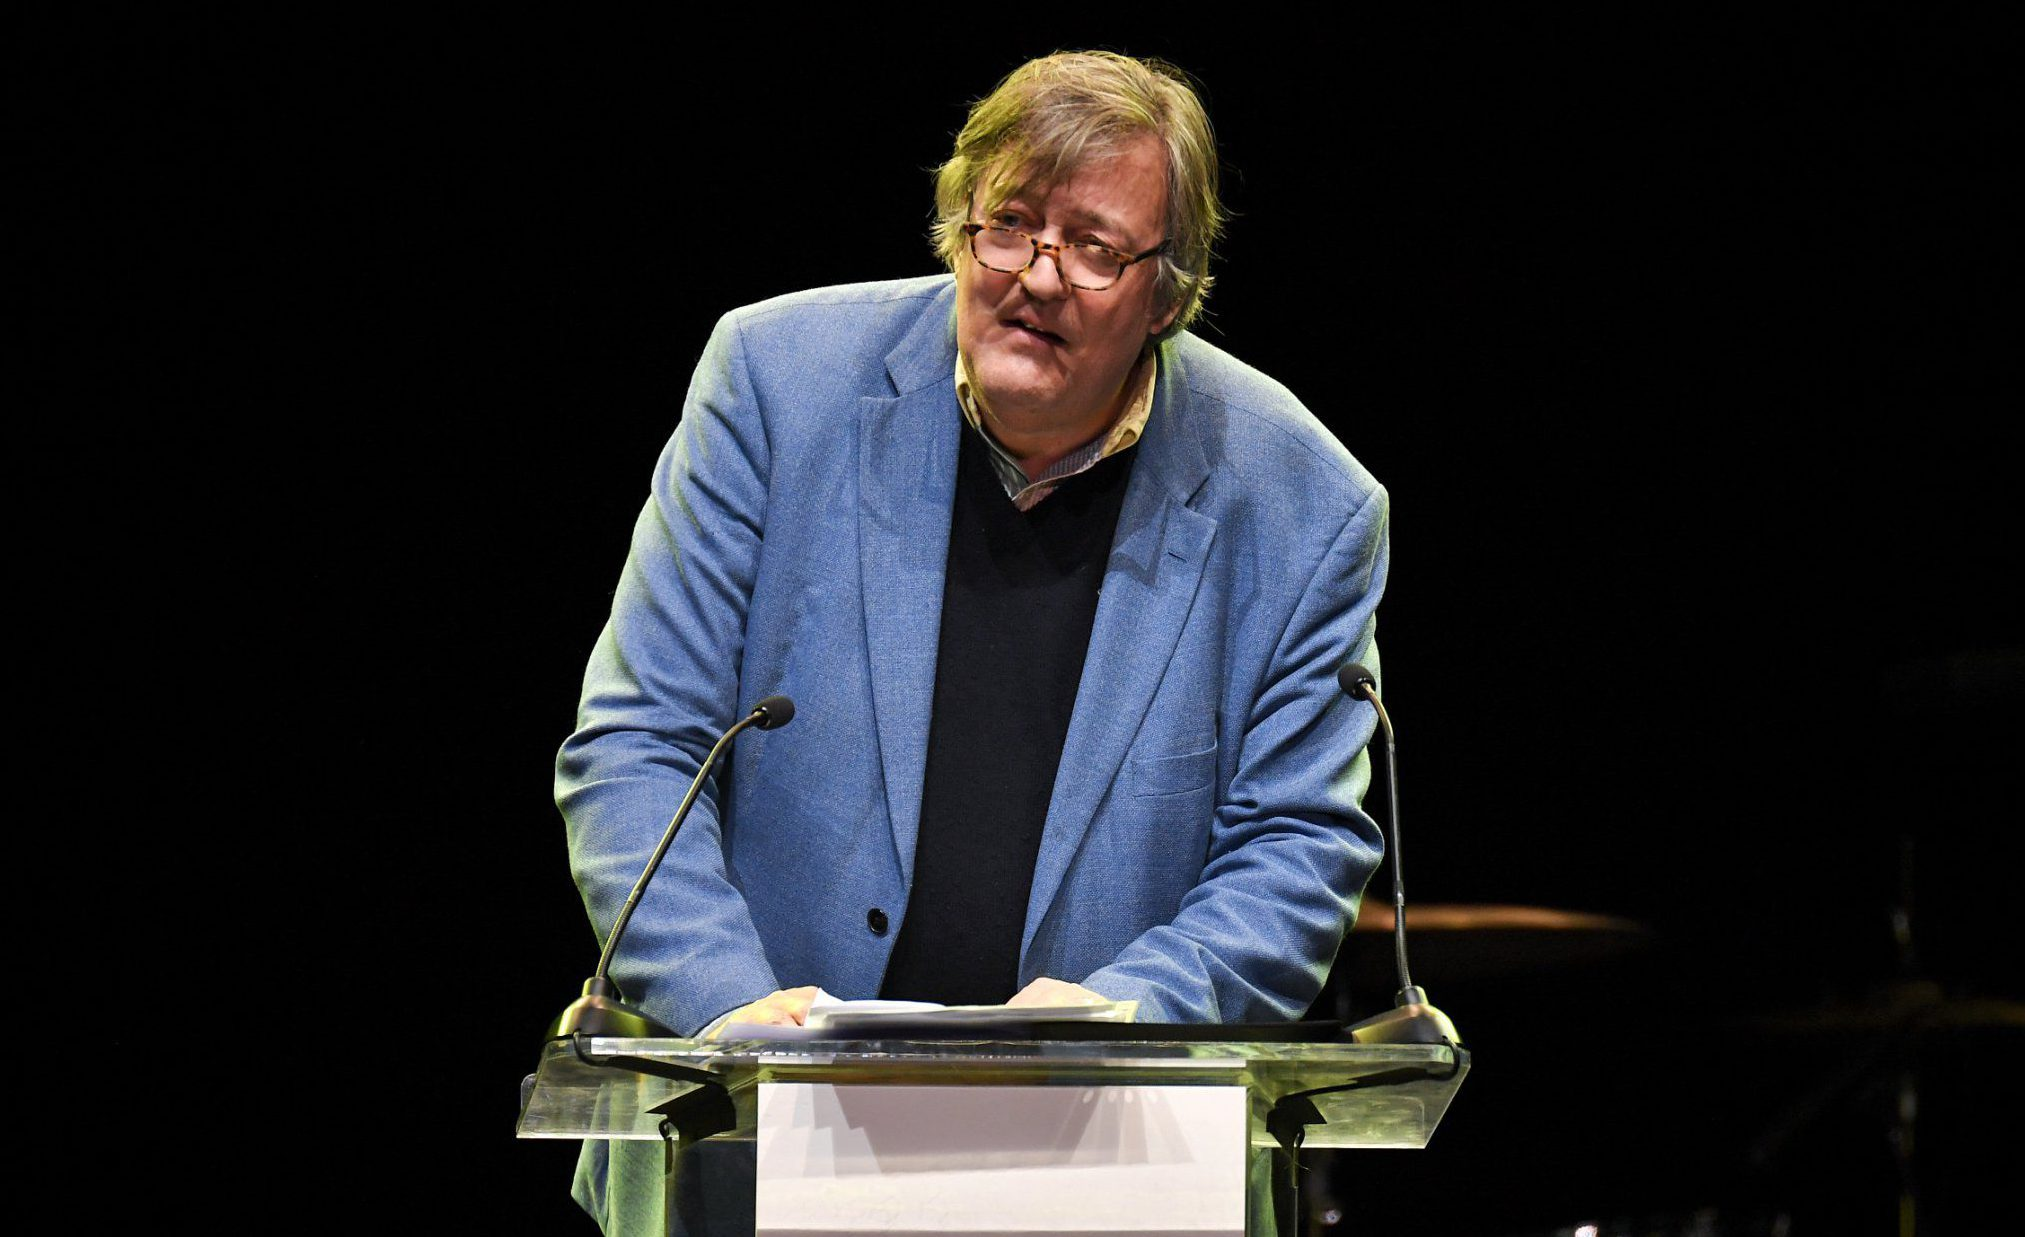 Stephen Fry returns to work at Letters Live after revealing prostate cancer battle